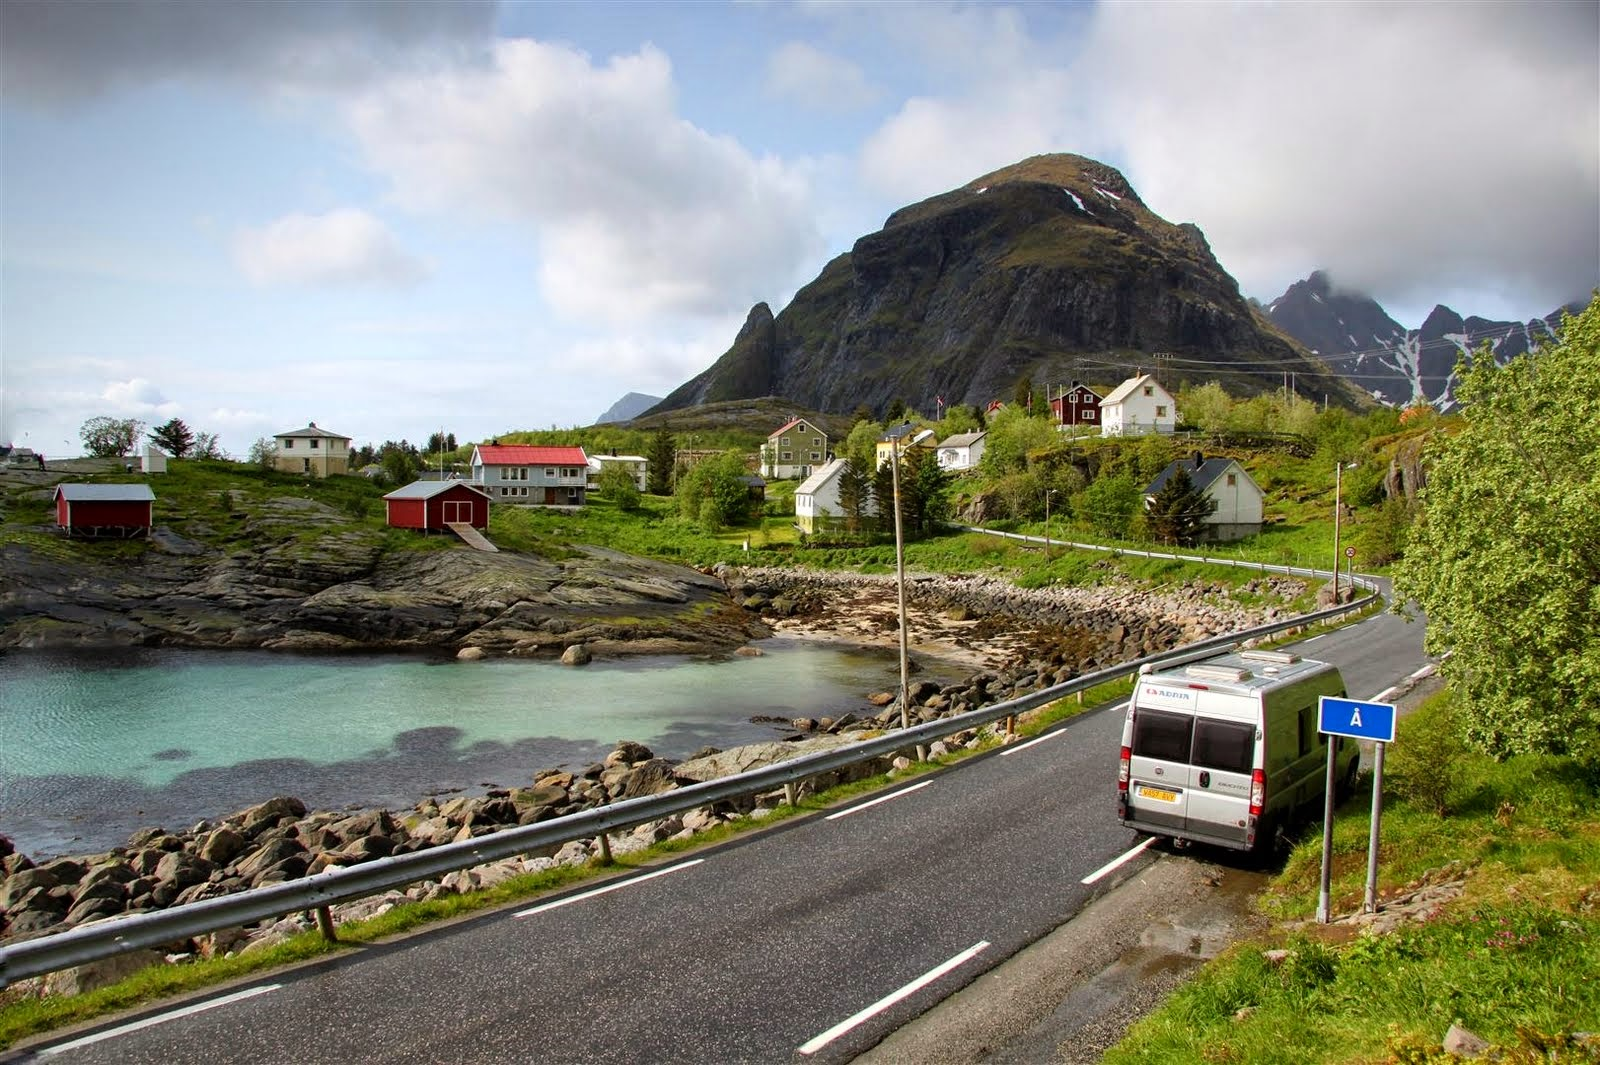 Campervan Norway Price Comparison – Camper rental in Norway – Camper & Motorhome Norway